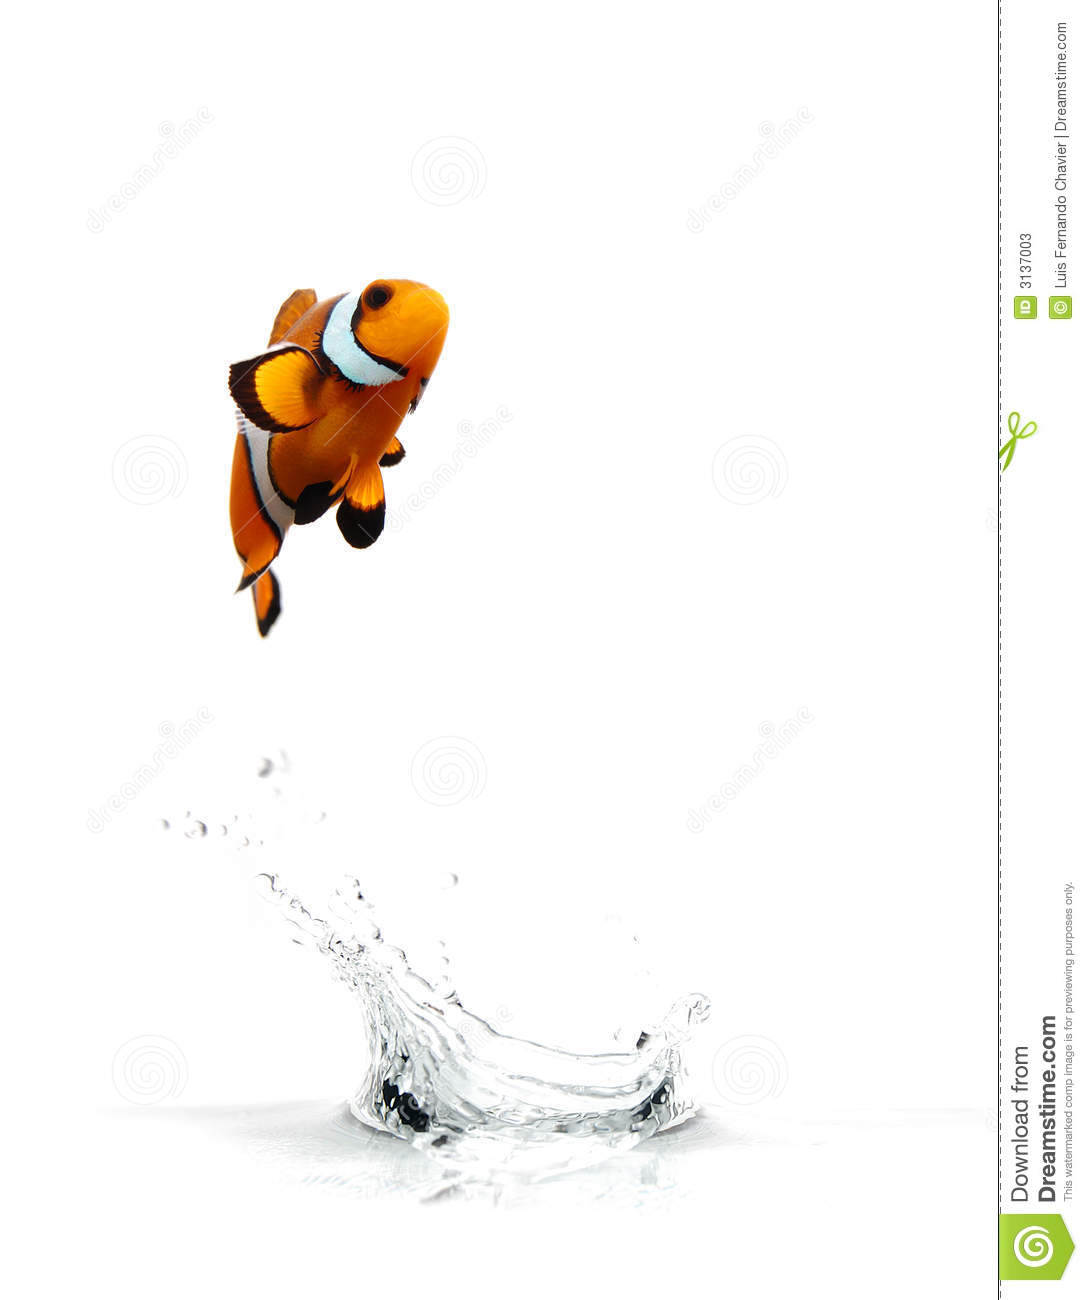 Jumping clownfish stock image image of background ocean for Dream about fish out of water